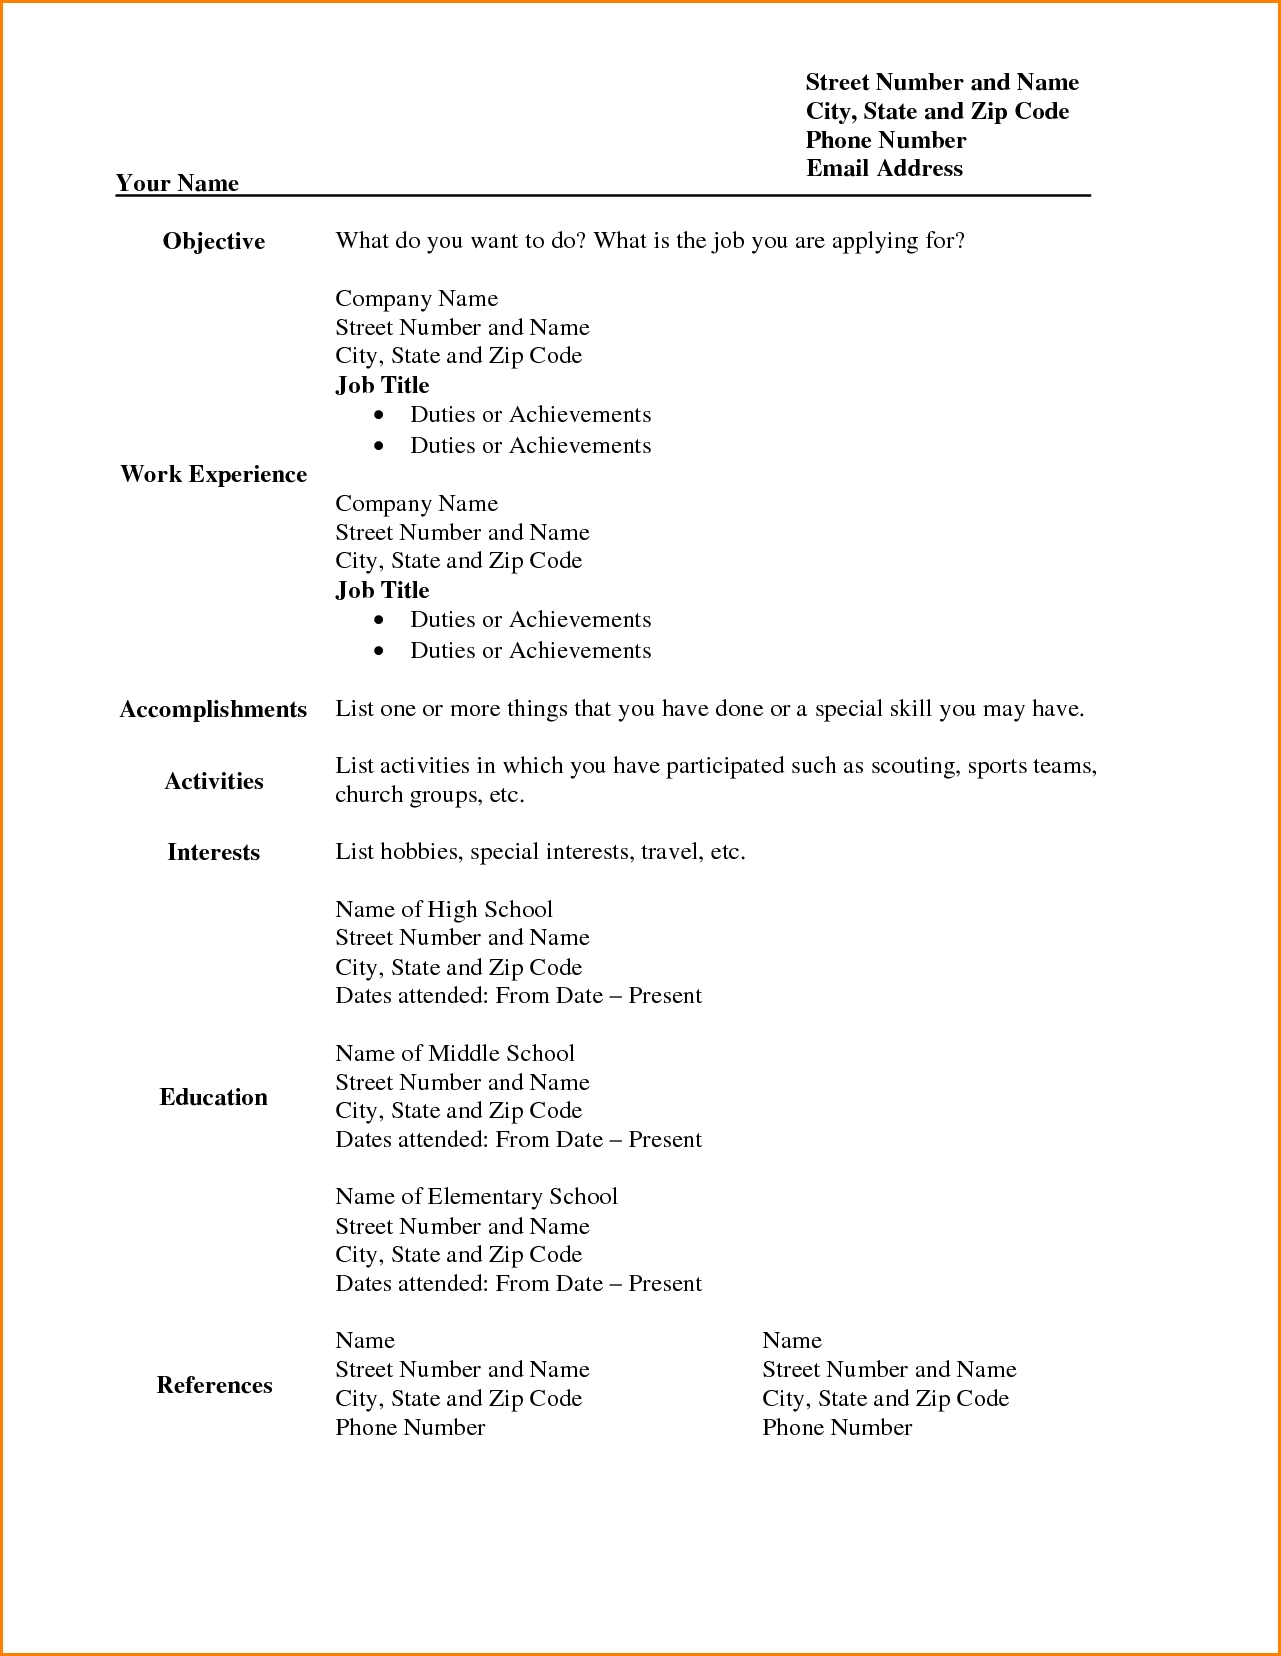 Free Sample Resume Formats Fancy Templates 5   tjfs journal.org